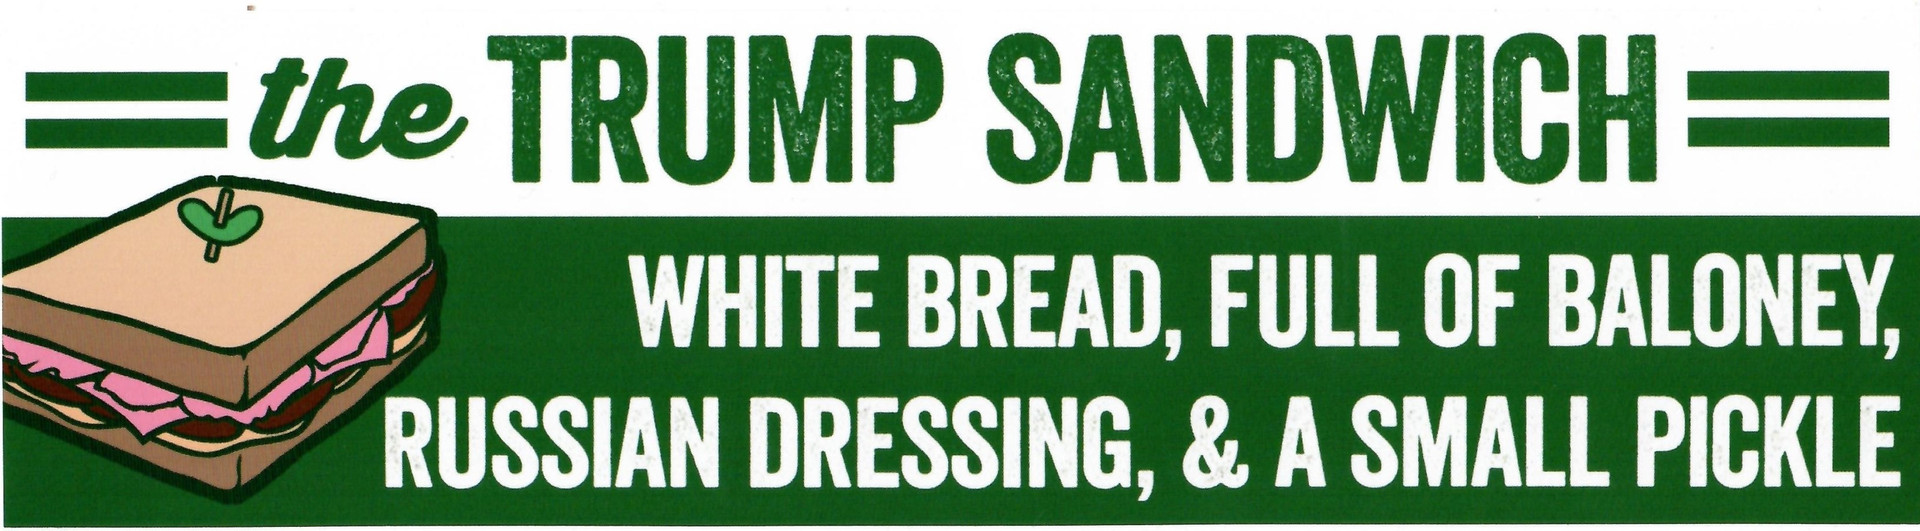 The Trump Sandwich (White bread, Full of Baloney, Russian Dressing, & a Small Pickle)